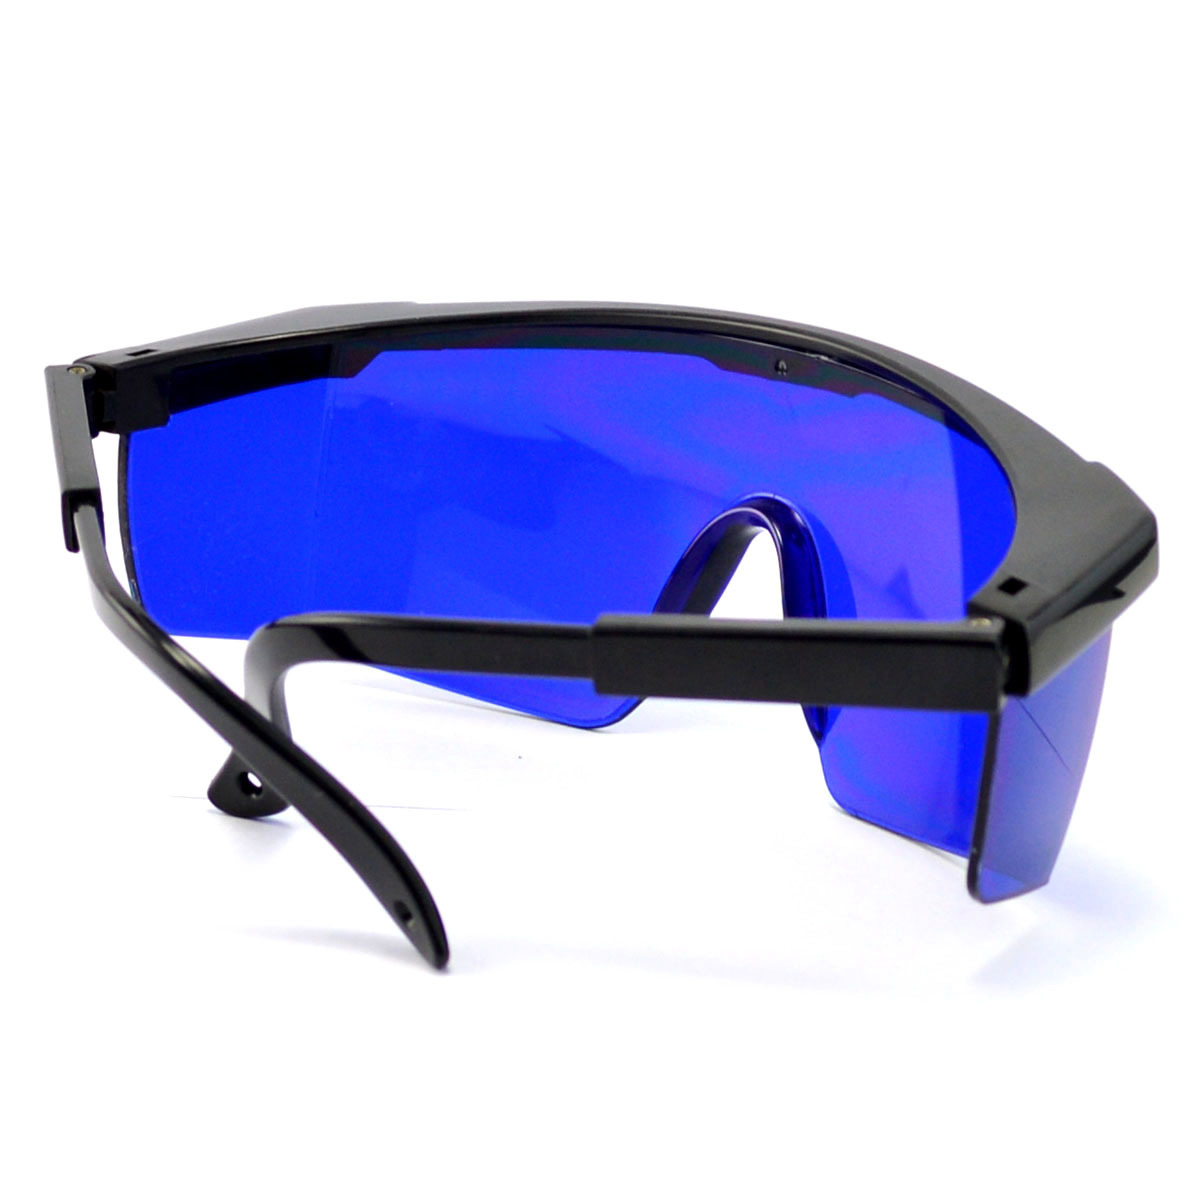 Mayitr Golf Ball Finder Glasses Blue Professional Lenses Sport Glasses Eye Protection With Box Golf Accessories